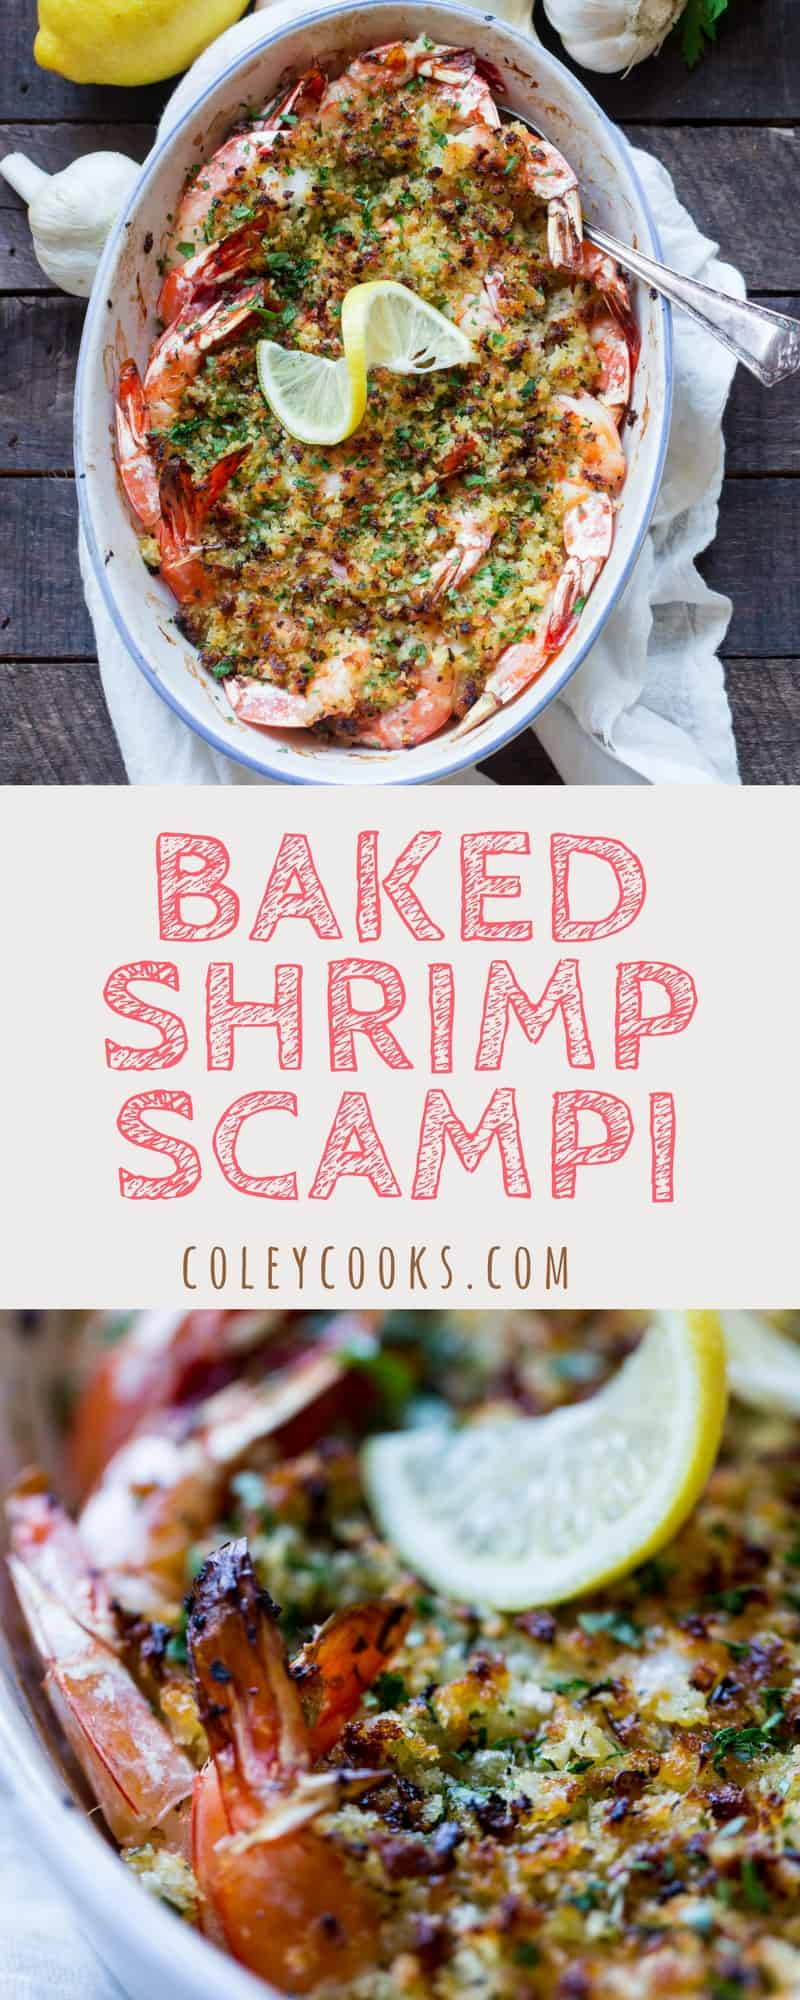 BAKED SHRIMP SCAMPI | Lemony, Buttery, Perfectly Cooked Shrimp with Crispy Herbed Breadcrumbs. SO Delicious! | ColeyCooks.com